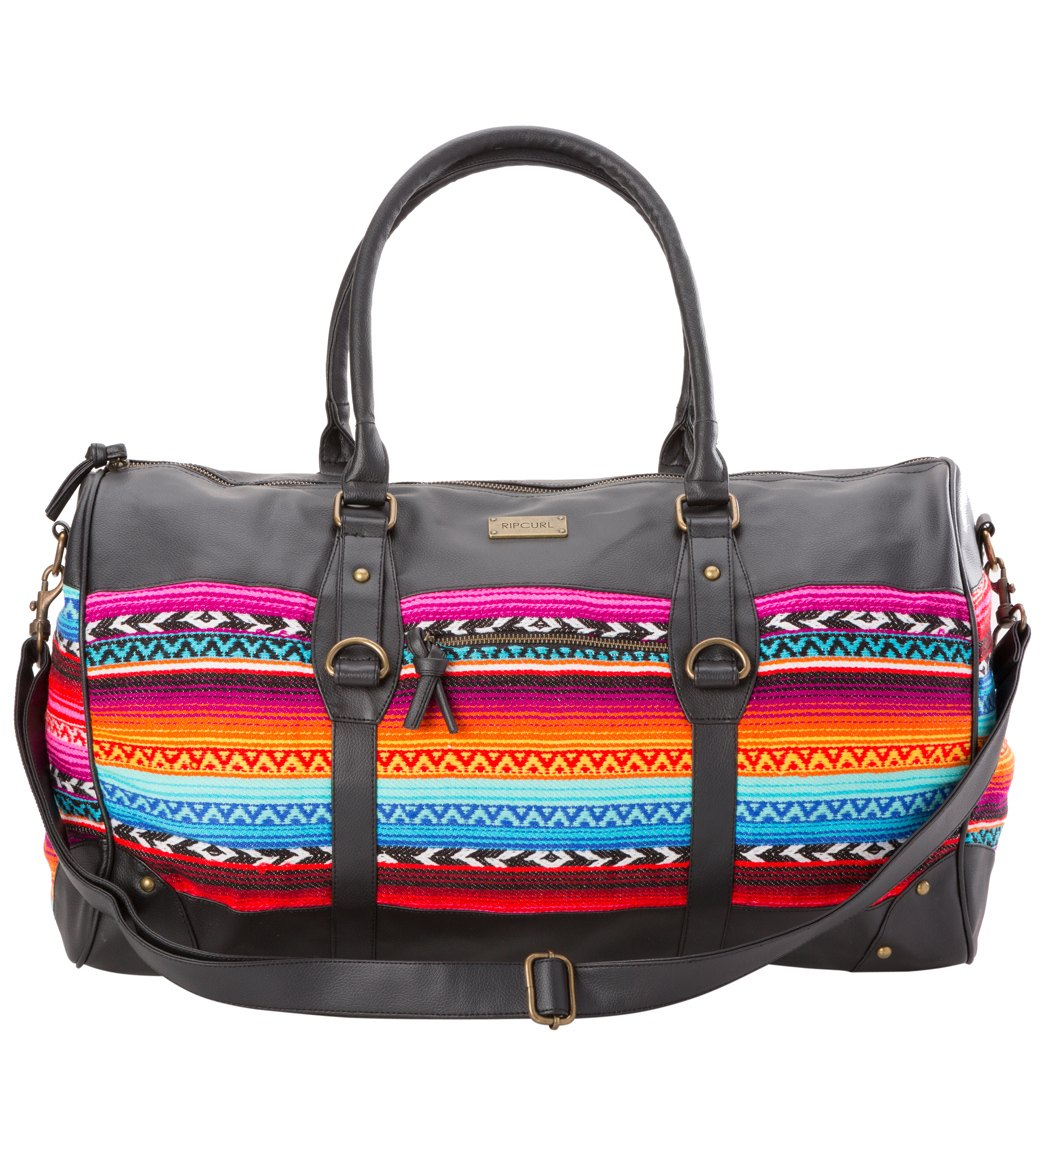 139f9cf3b8d0 Rip Curl Lolita Weekender Bag at SwimOutlet.com - Free Shipping